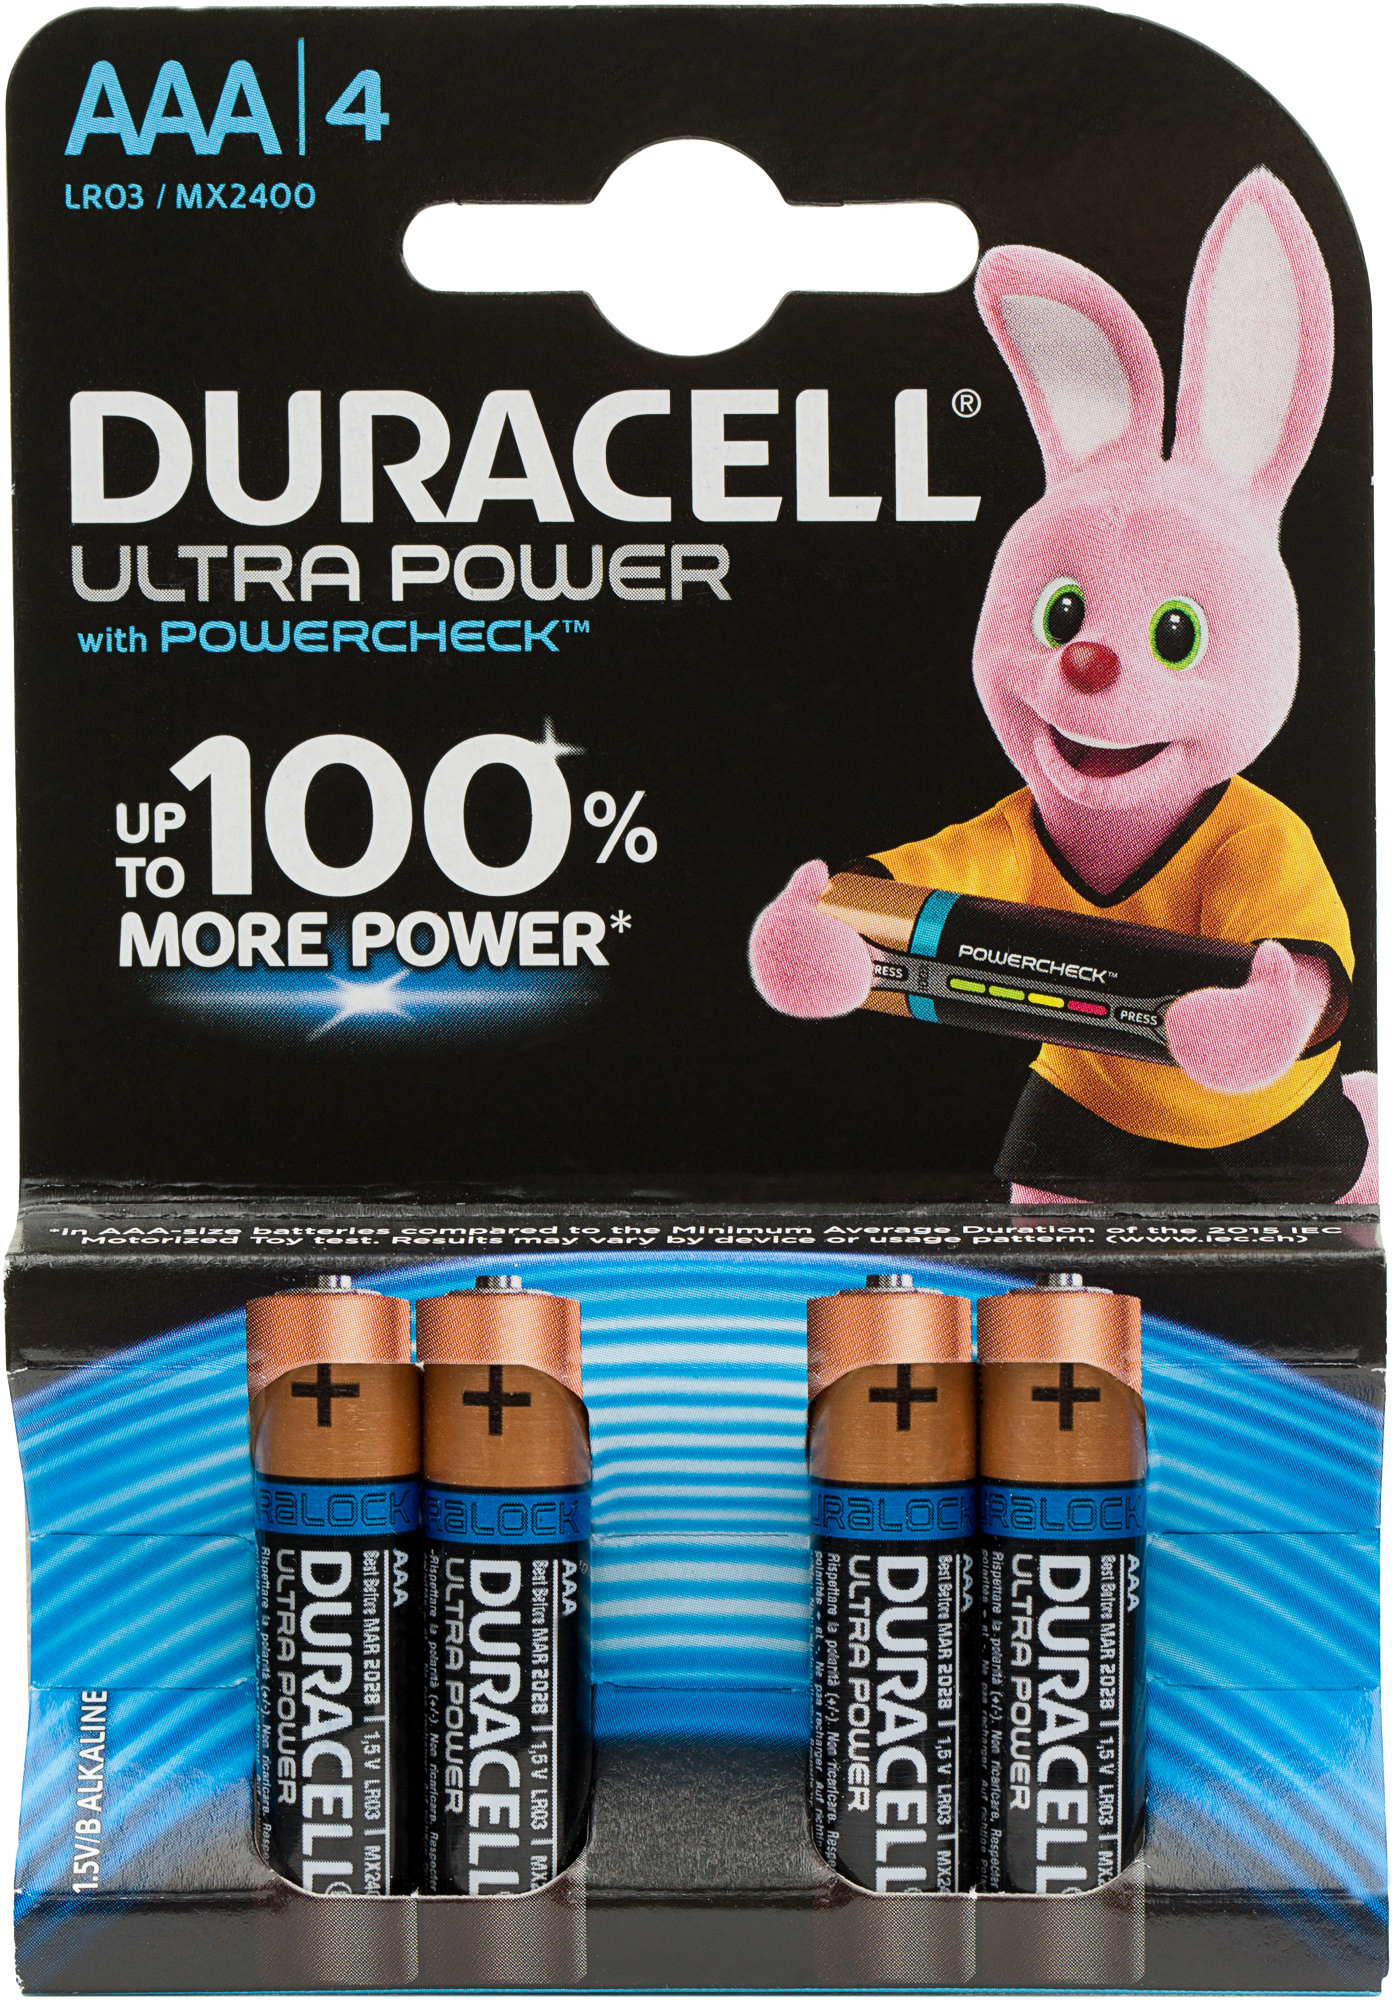 Duracell Батарейки щелочные Ultra Power ААА/LR03, 4 шт.